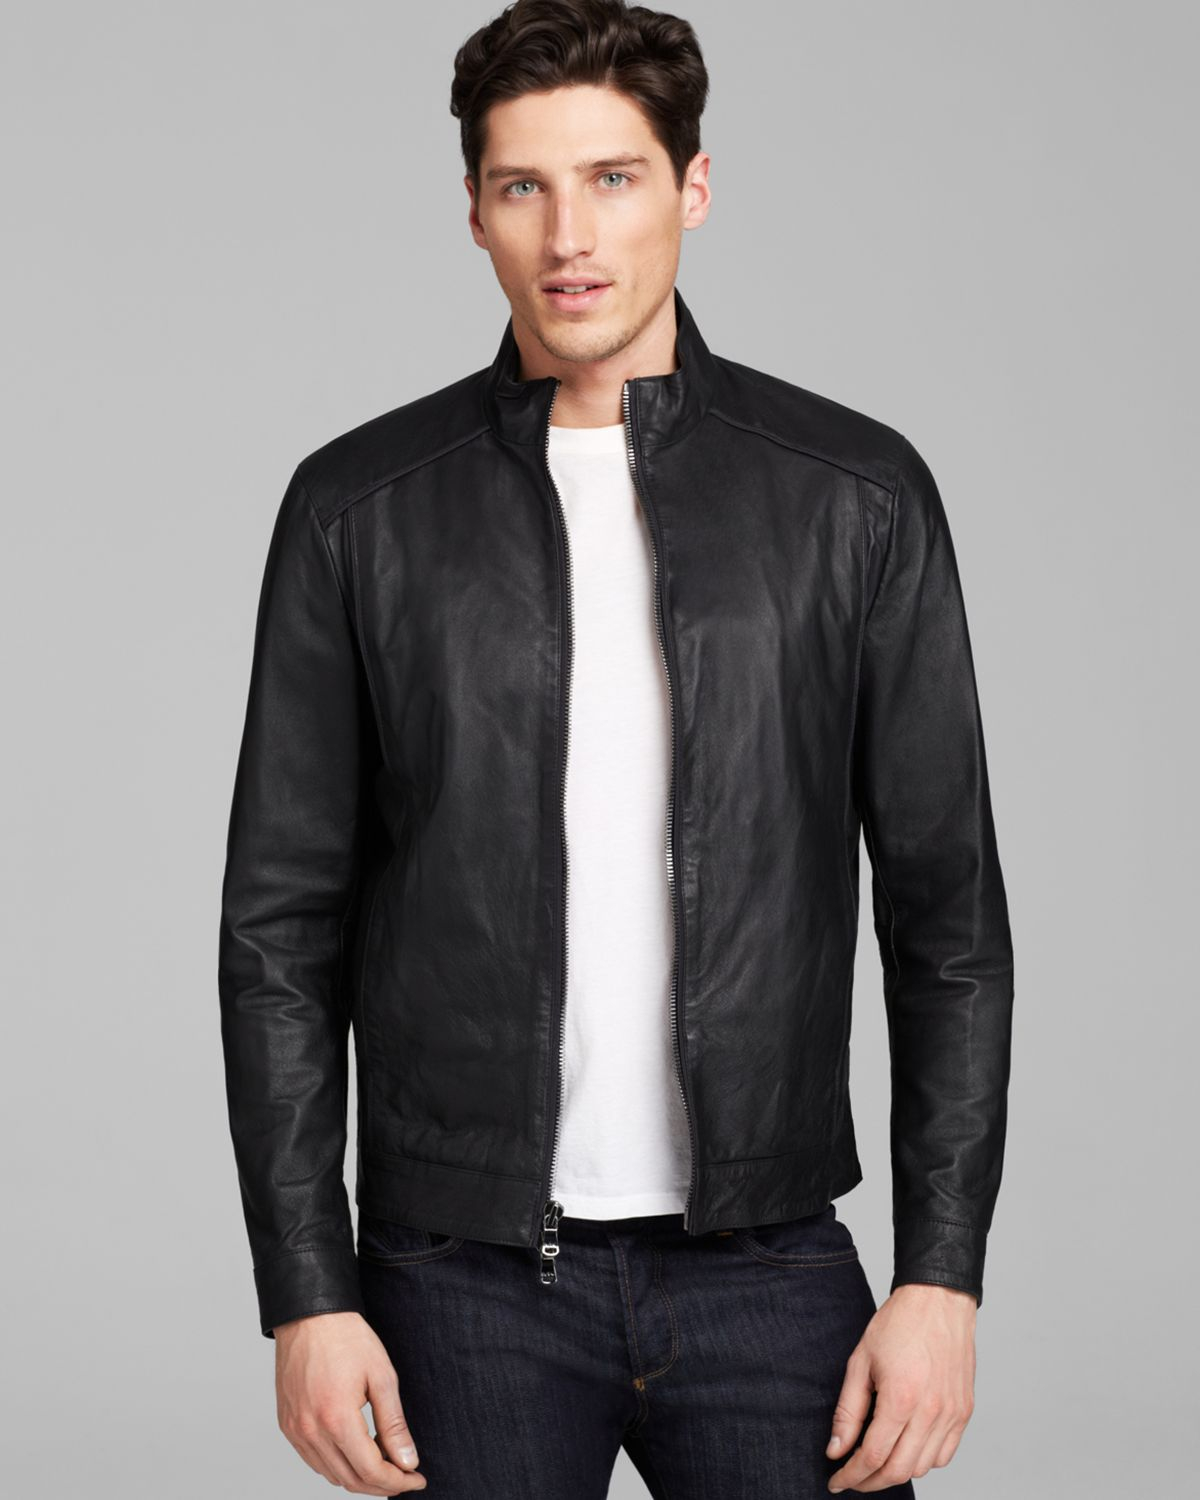 Michael Kors Piped Leather Jacket In Black For Men